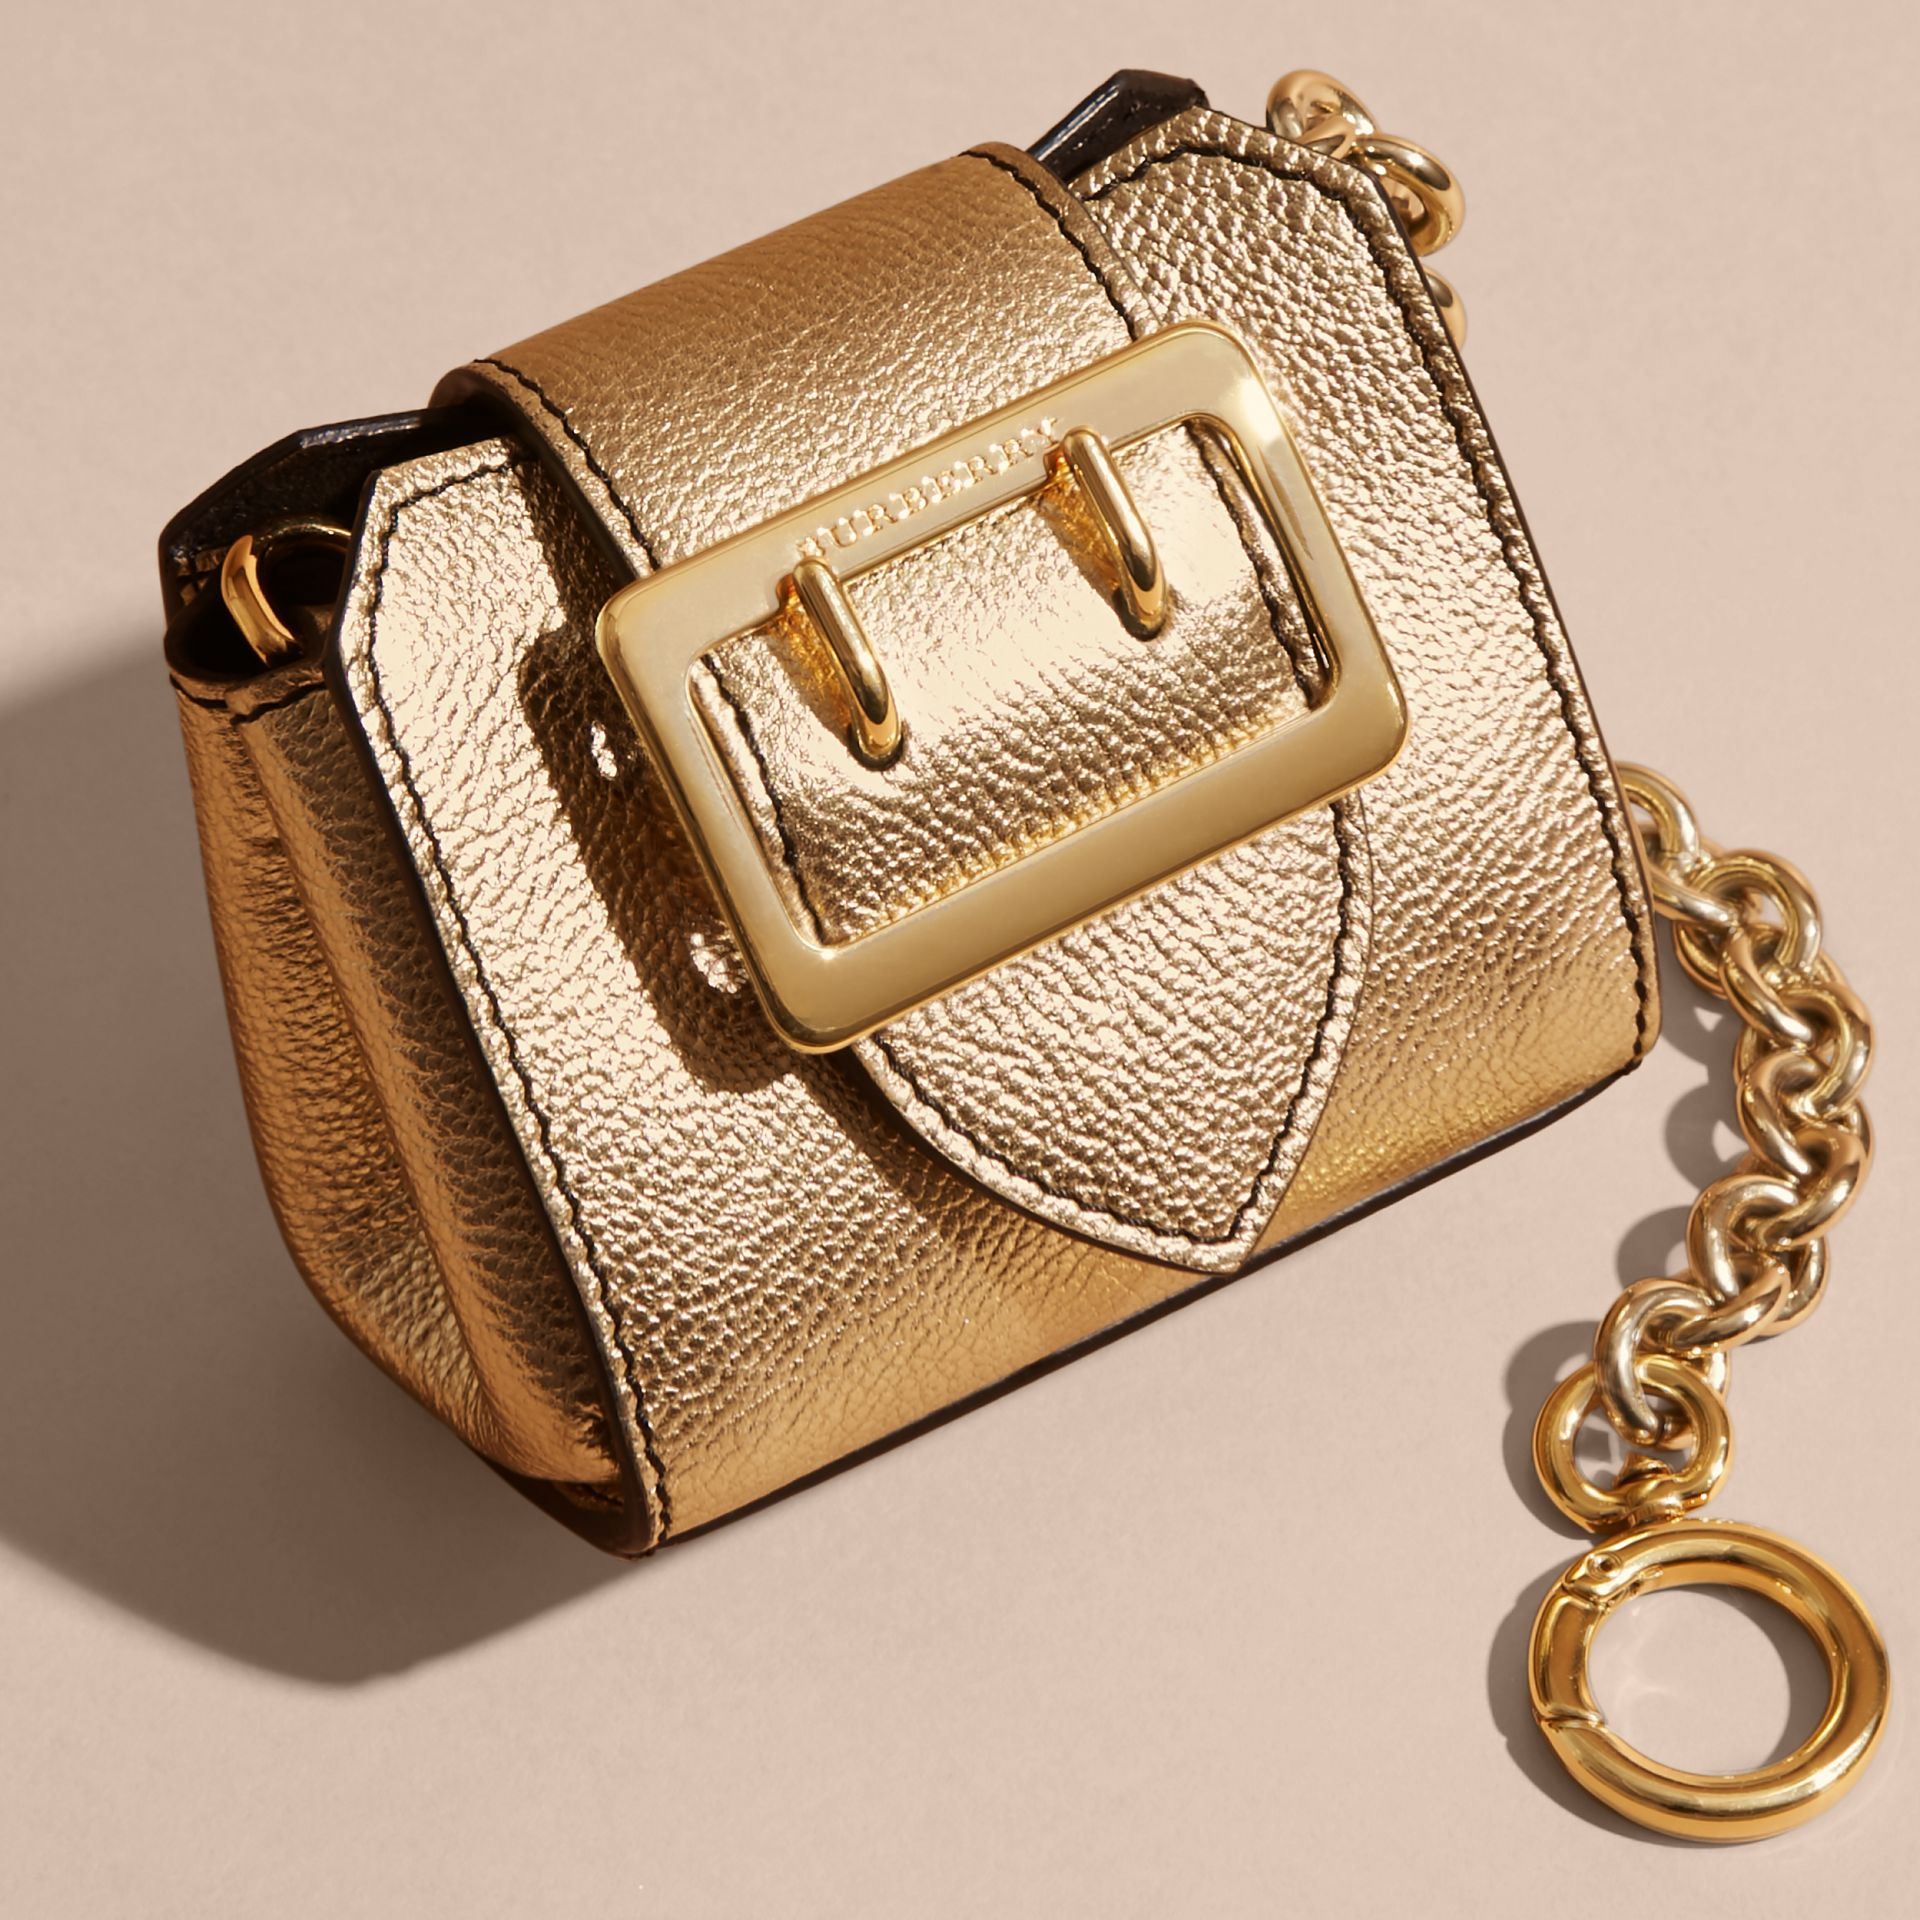 The Mini Buckle Tote Charm in Metallic Leather in Gold - gallery image 3